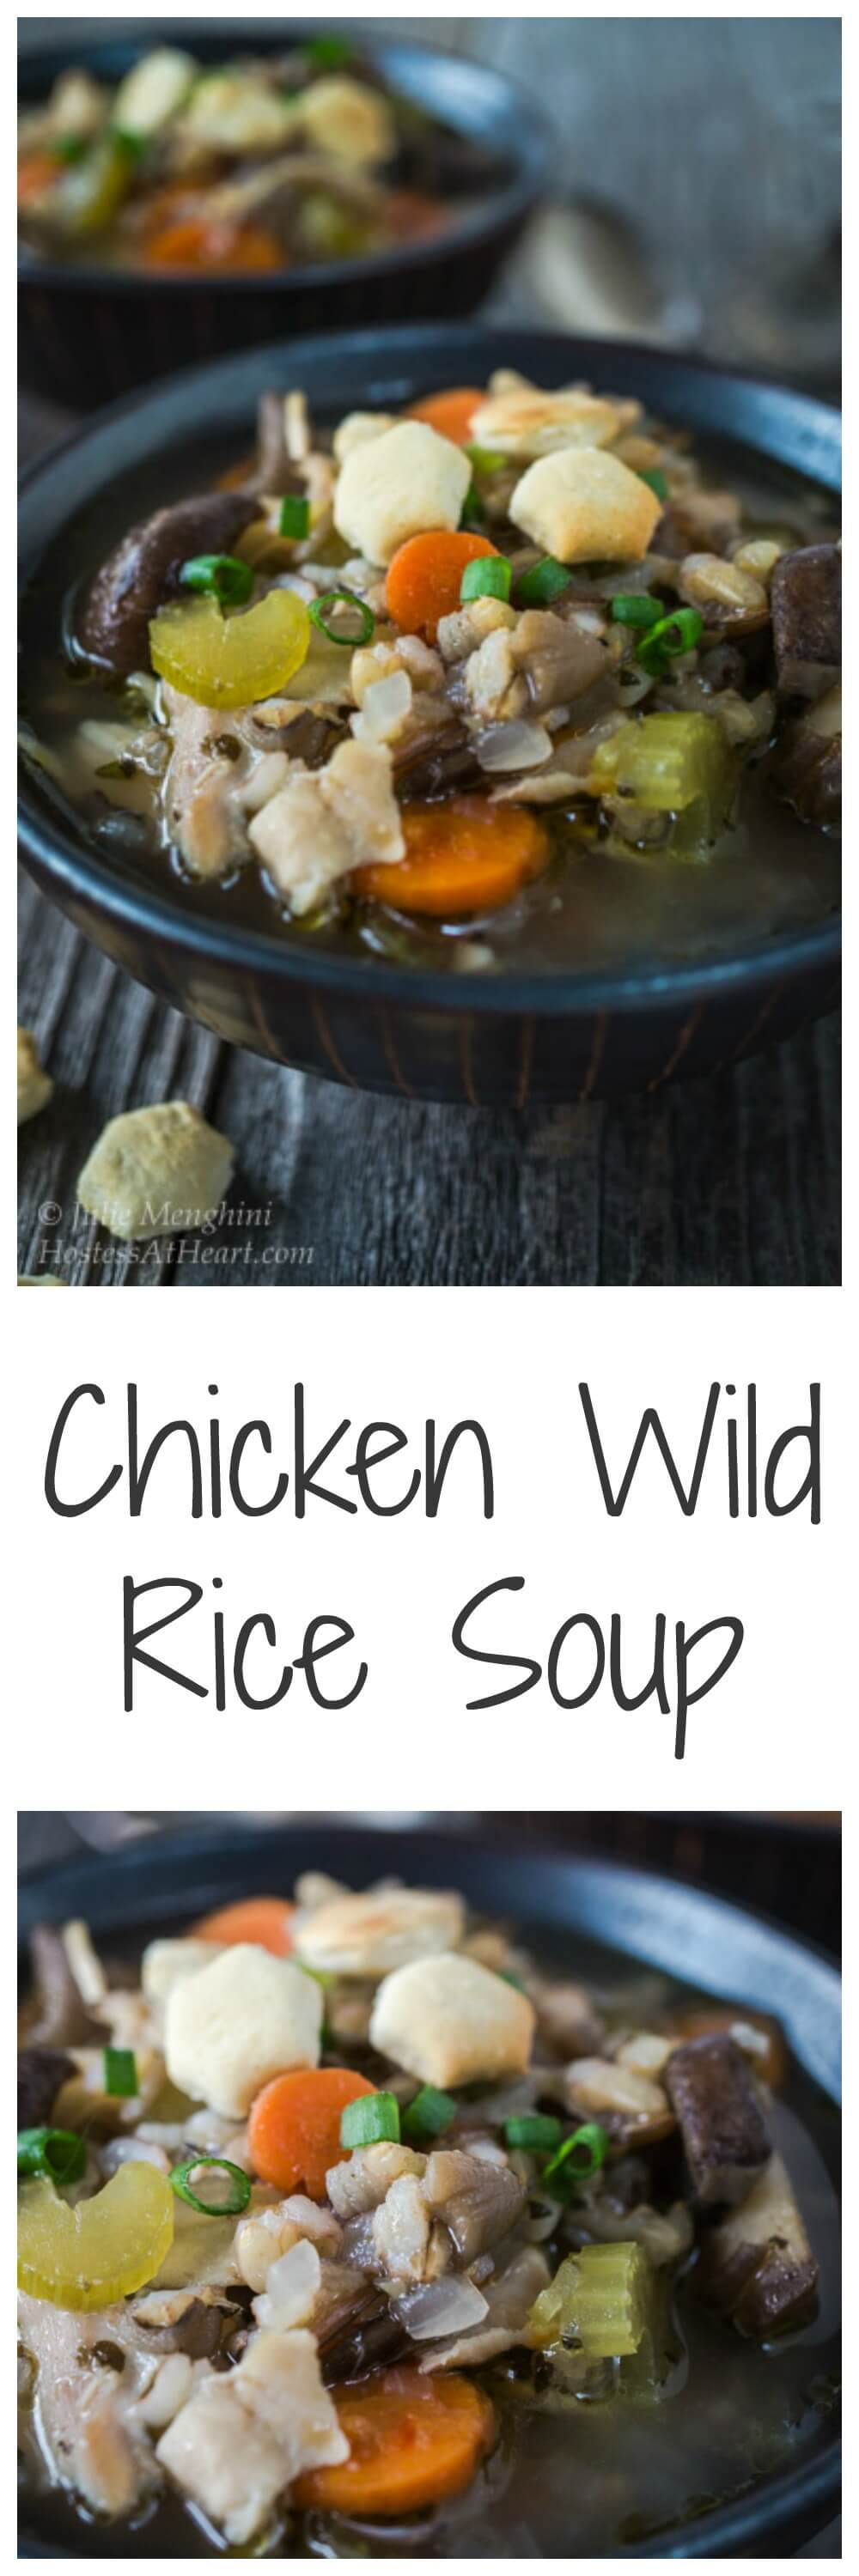 A delicious Easy and Healthy Chicken Wild Rice soup that is low fat and packed with good for you ingredients. It's perfect for a chilly day andan easy wayto put a healthy meal on the table. | HostessAtHearts.com | Comfort Food | Homemade Soup | Healthy Food